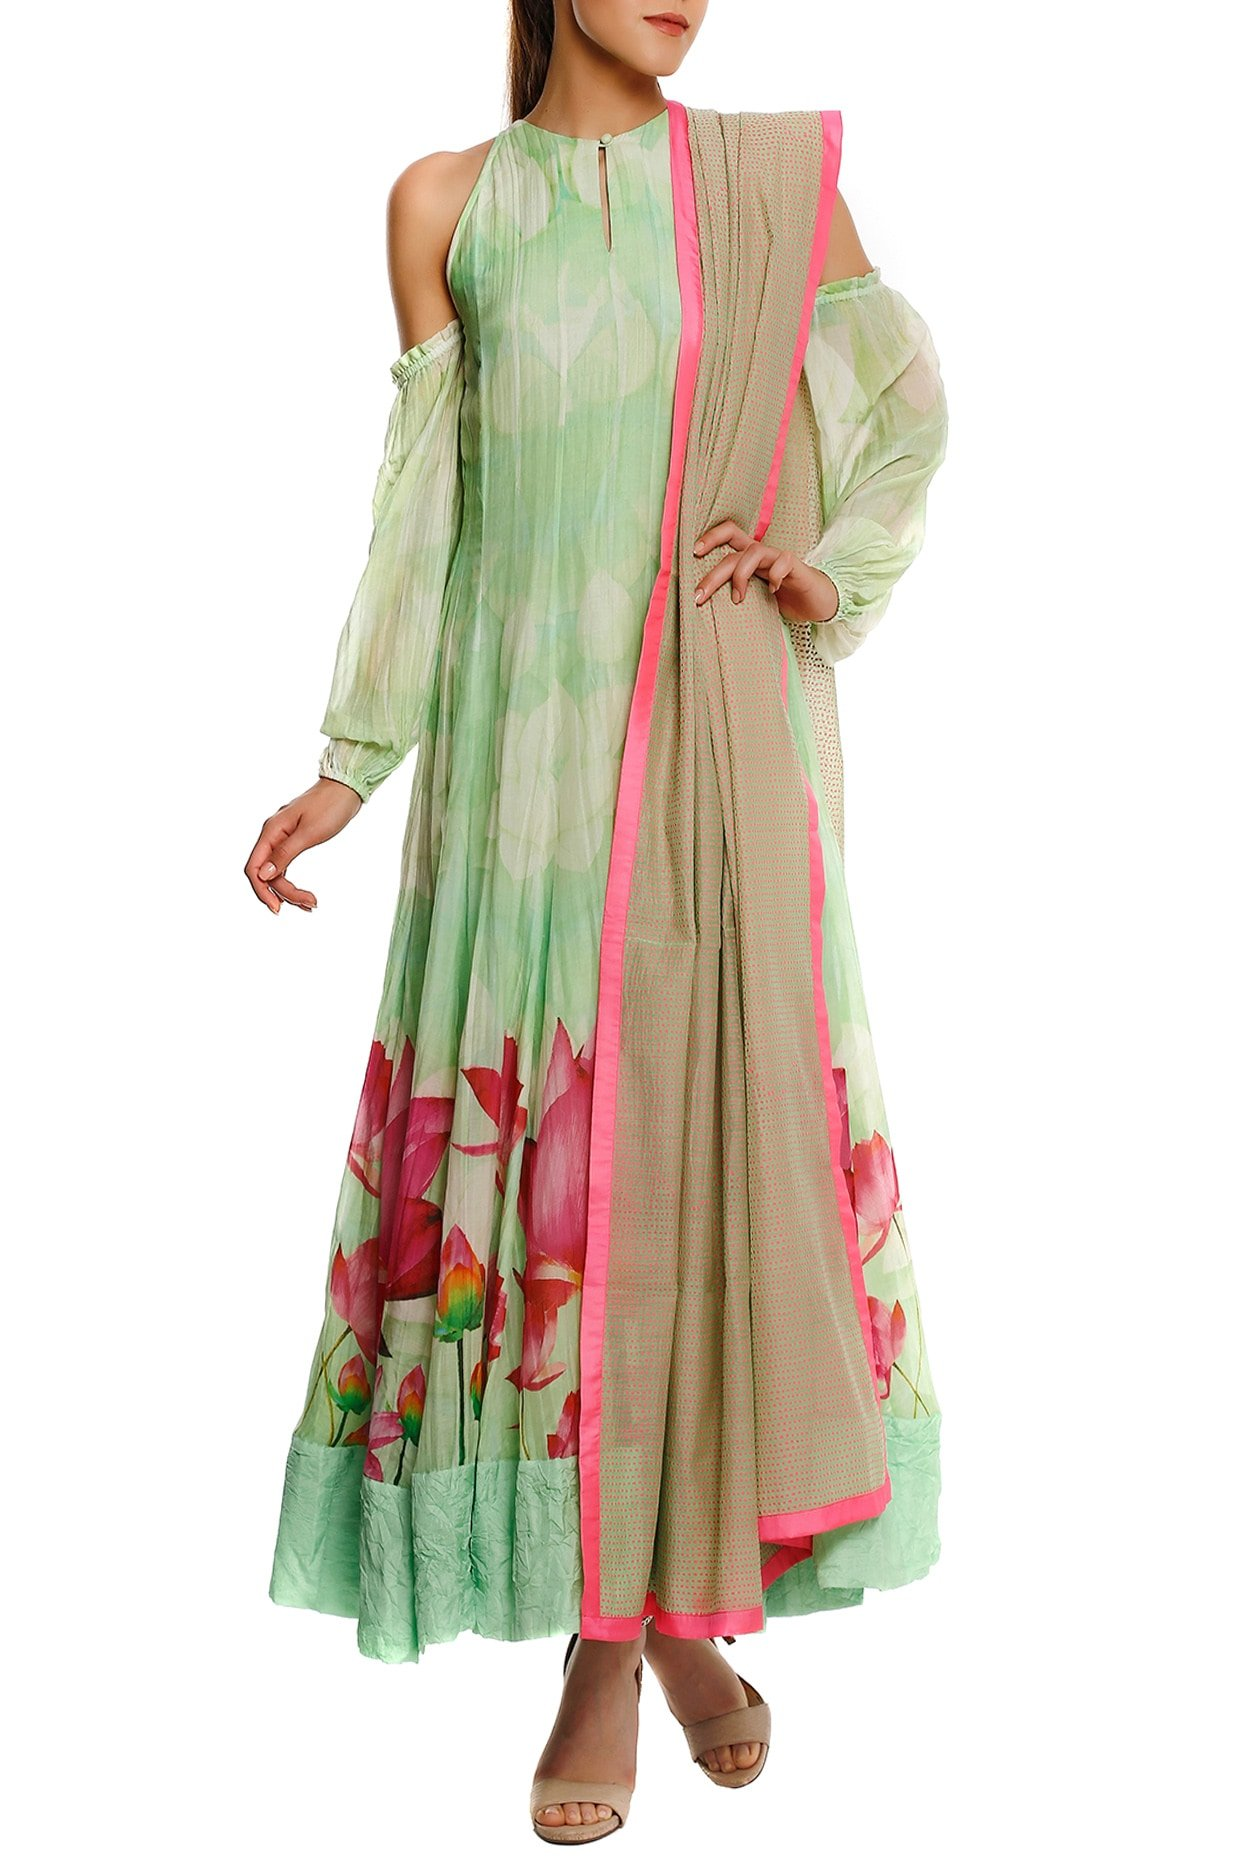 Mint Green Anarkali Set by Masaba-Handpicked for You